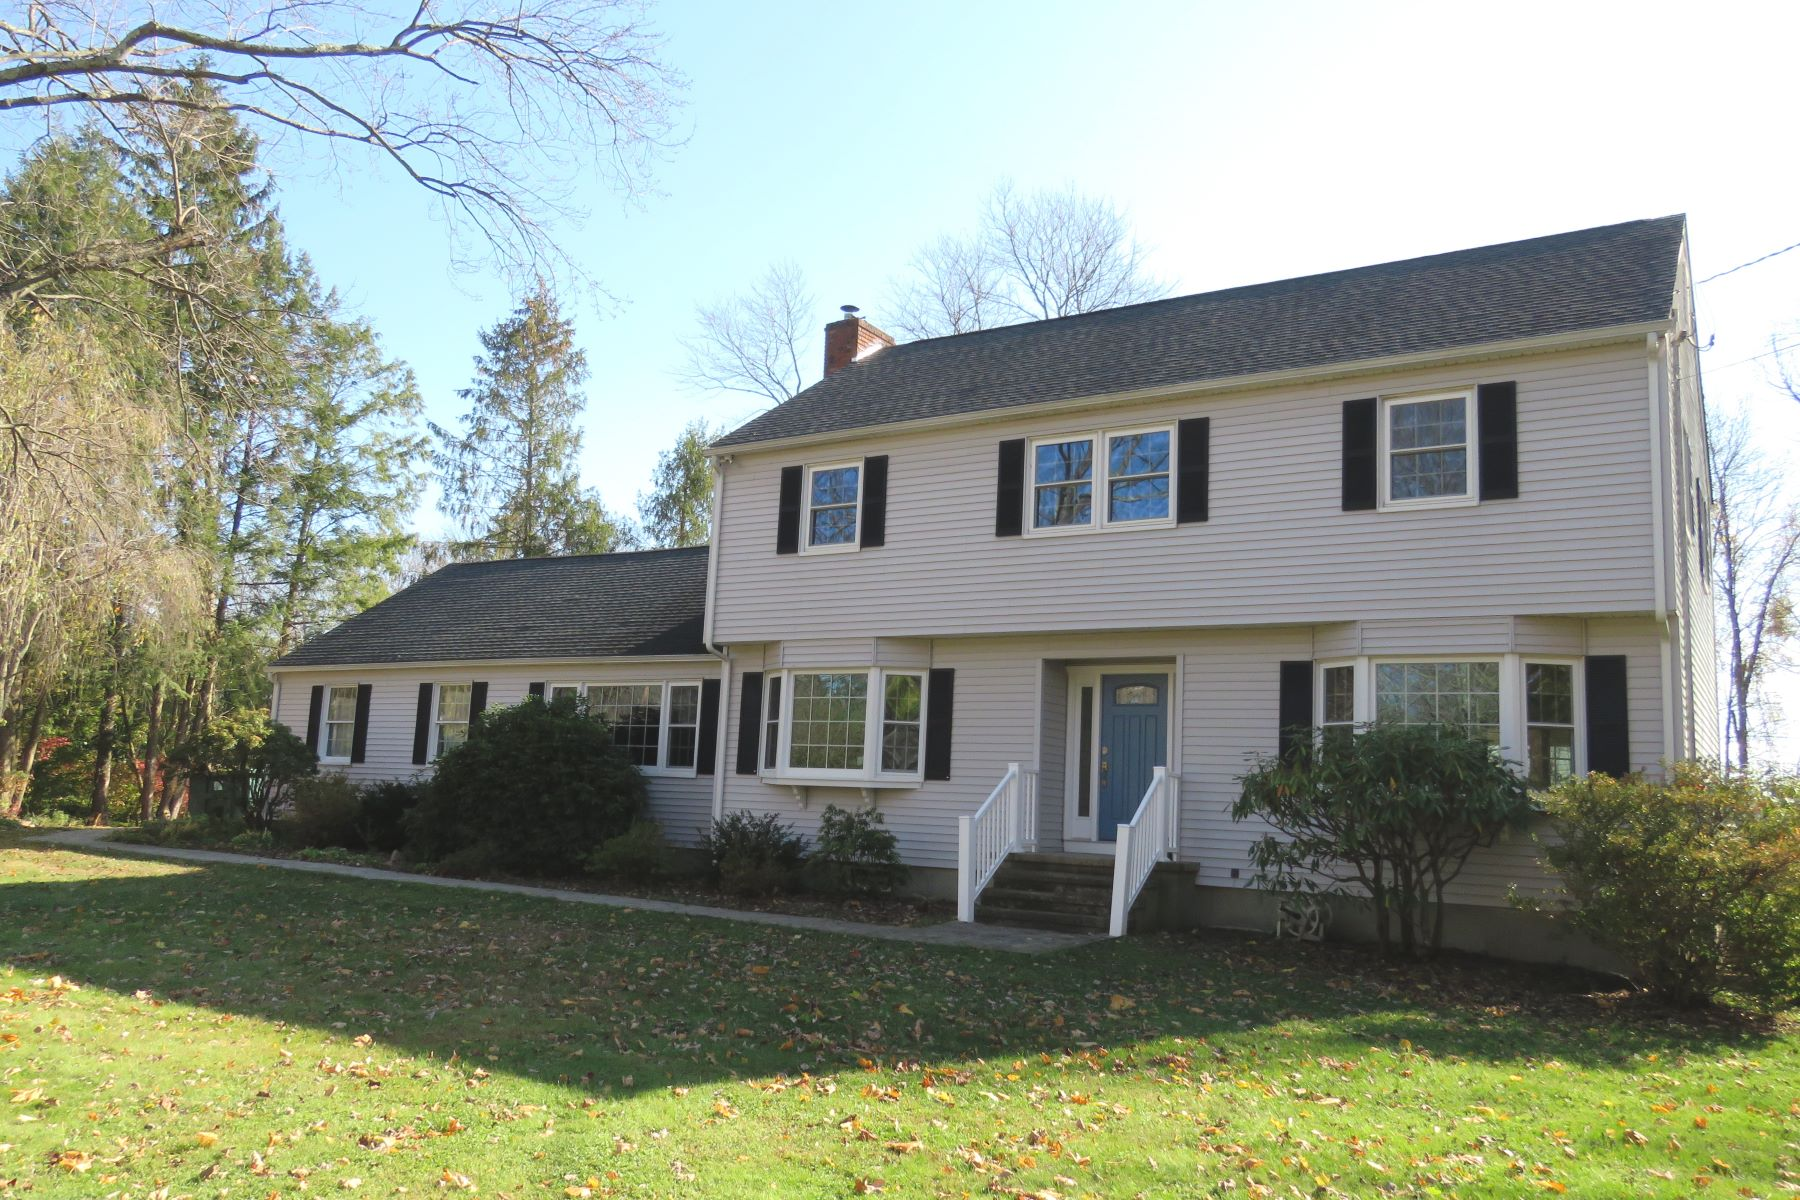 Single Family Homes for Sale at Serene Pastoral Views 16 Grand Place Newtown, Connecticut 06470 United States